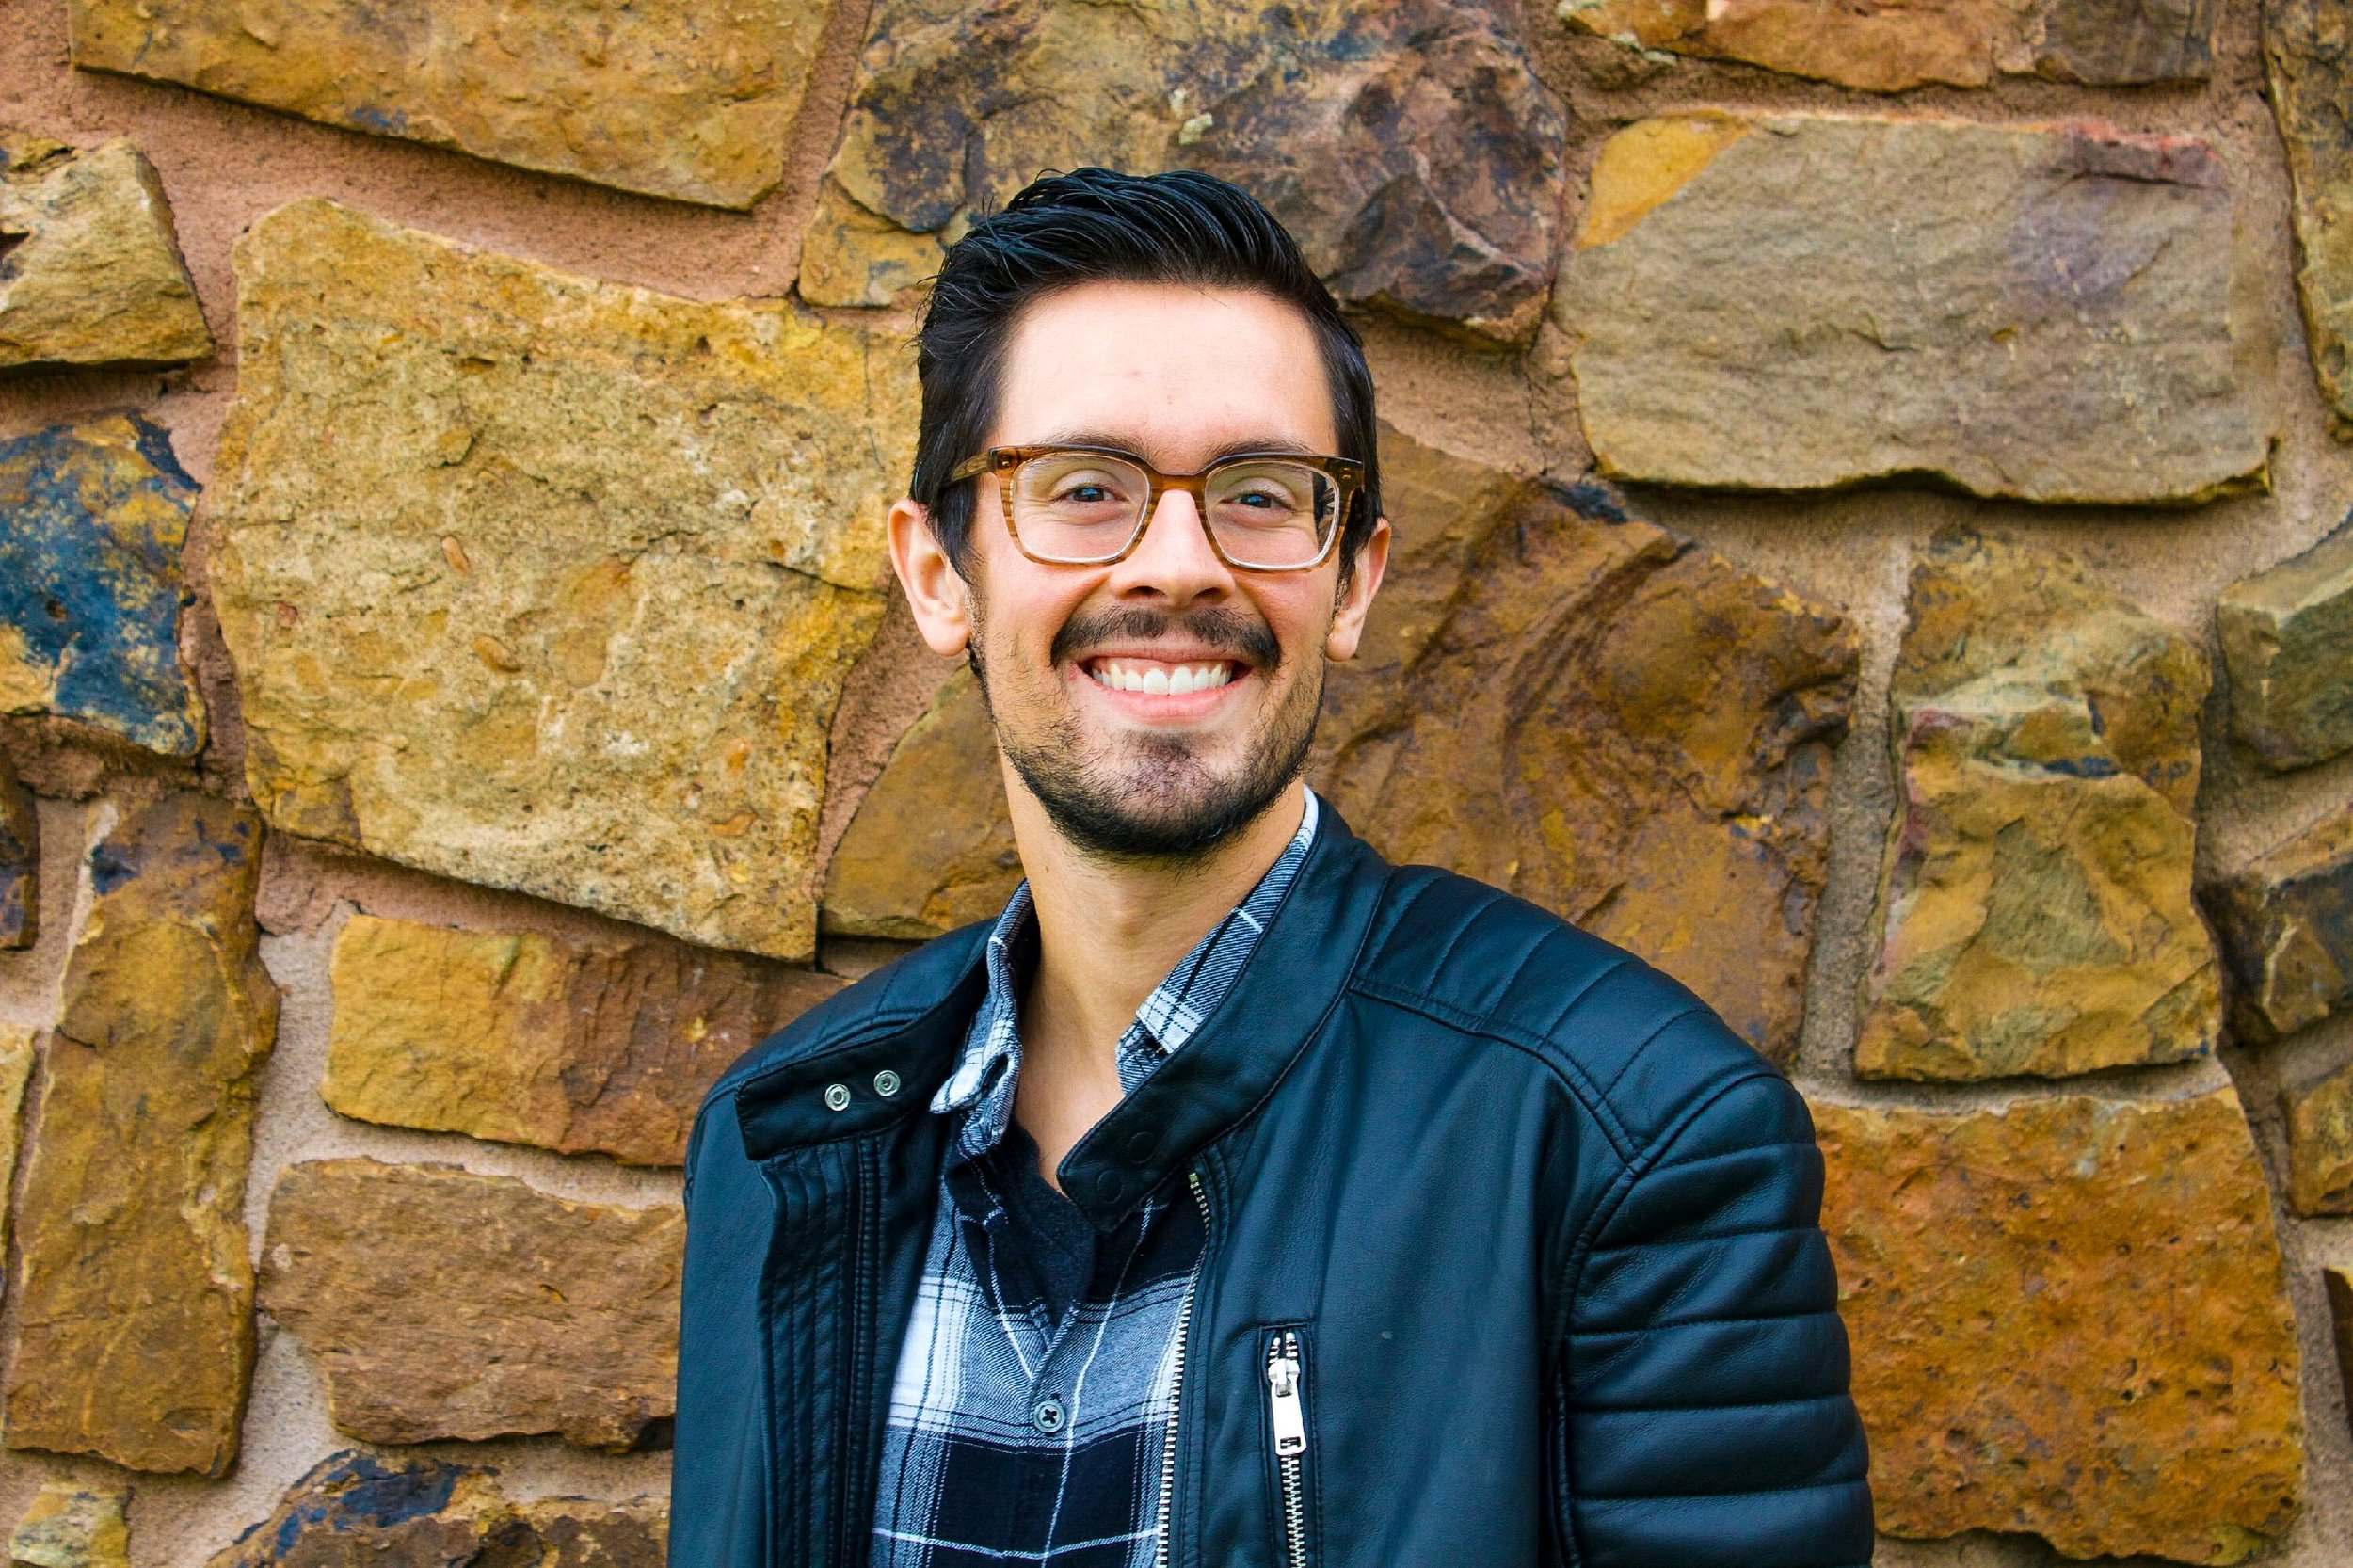 Caleb Long - Caleb Long serves as the planting pastor of New City Fellowship. Caleb was born in Portugal and fell in love with cross-cultural ministry while playing soccer on the streets of Lisbon.After three years of serving alongside Philip Abode at Crossover Bible Church, Caleb began the process of planting New City Fellowship to put feet to the dream of creating a network of disciple-making churches that love and serve our neighbors.When he's not working you can find him hanging out with his wife Katie and their two kids, running through north Tulsa, or playing music with friends.